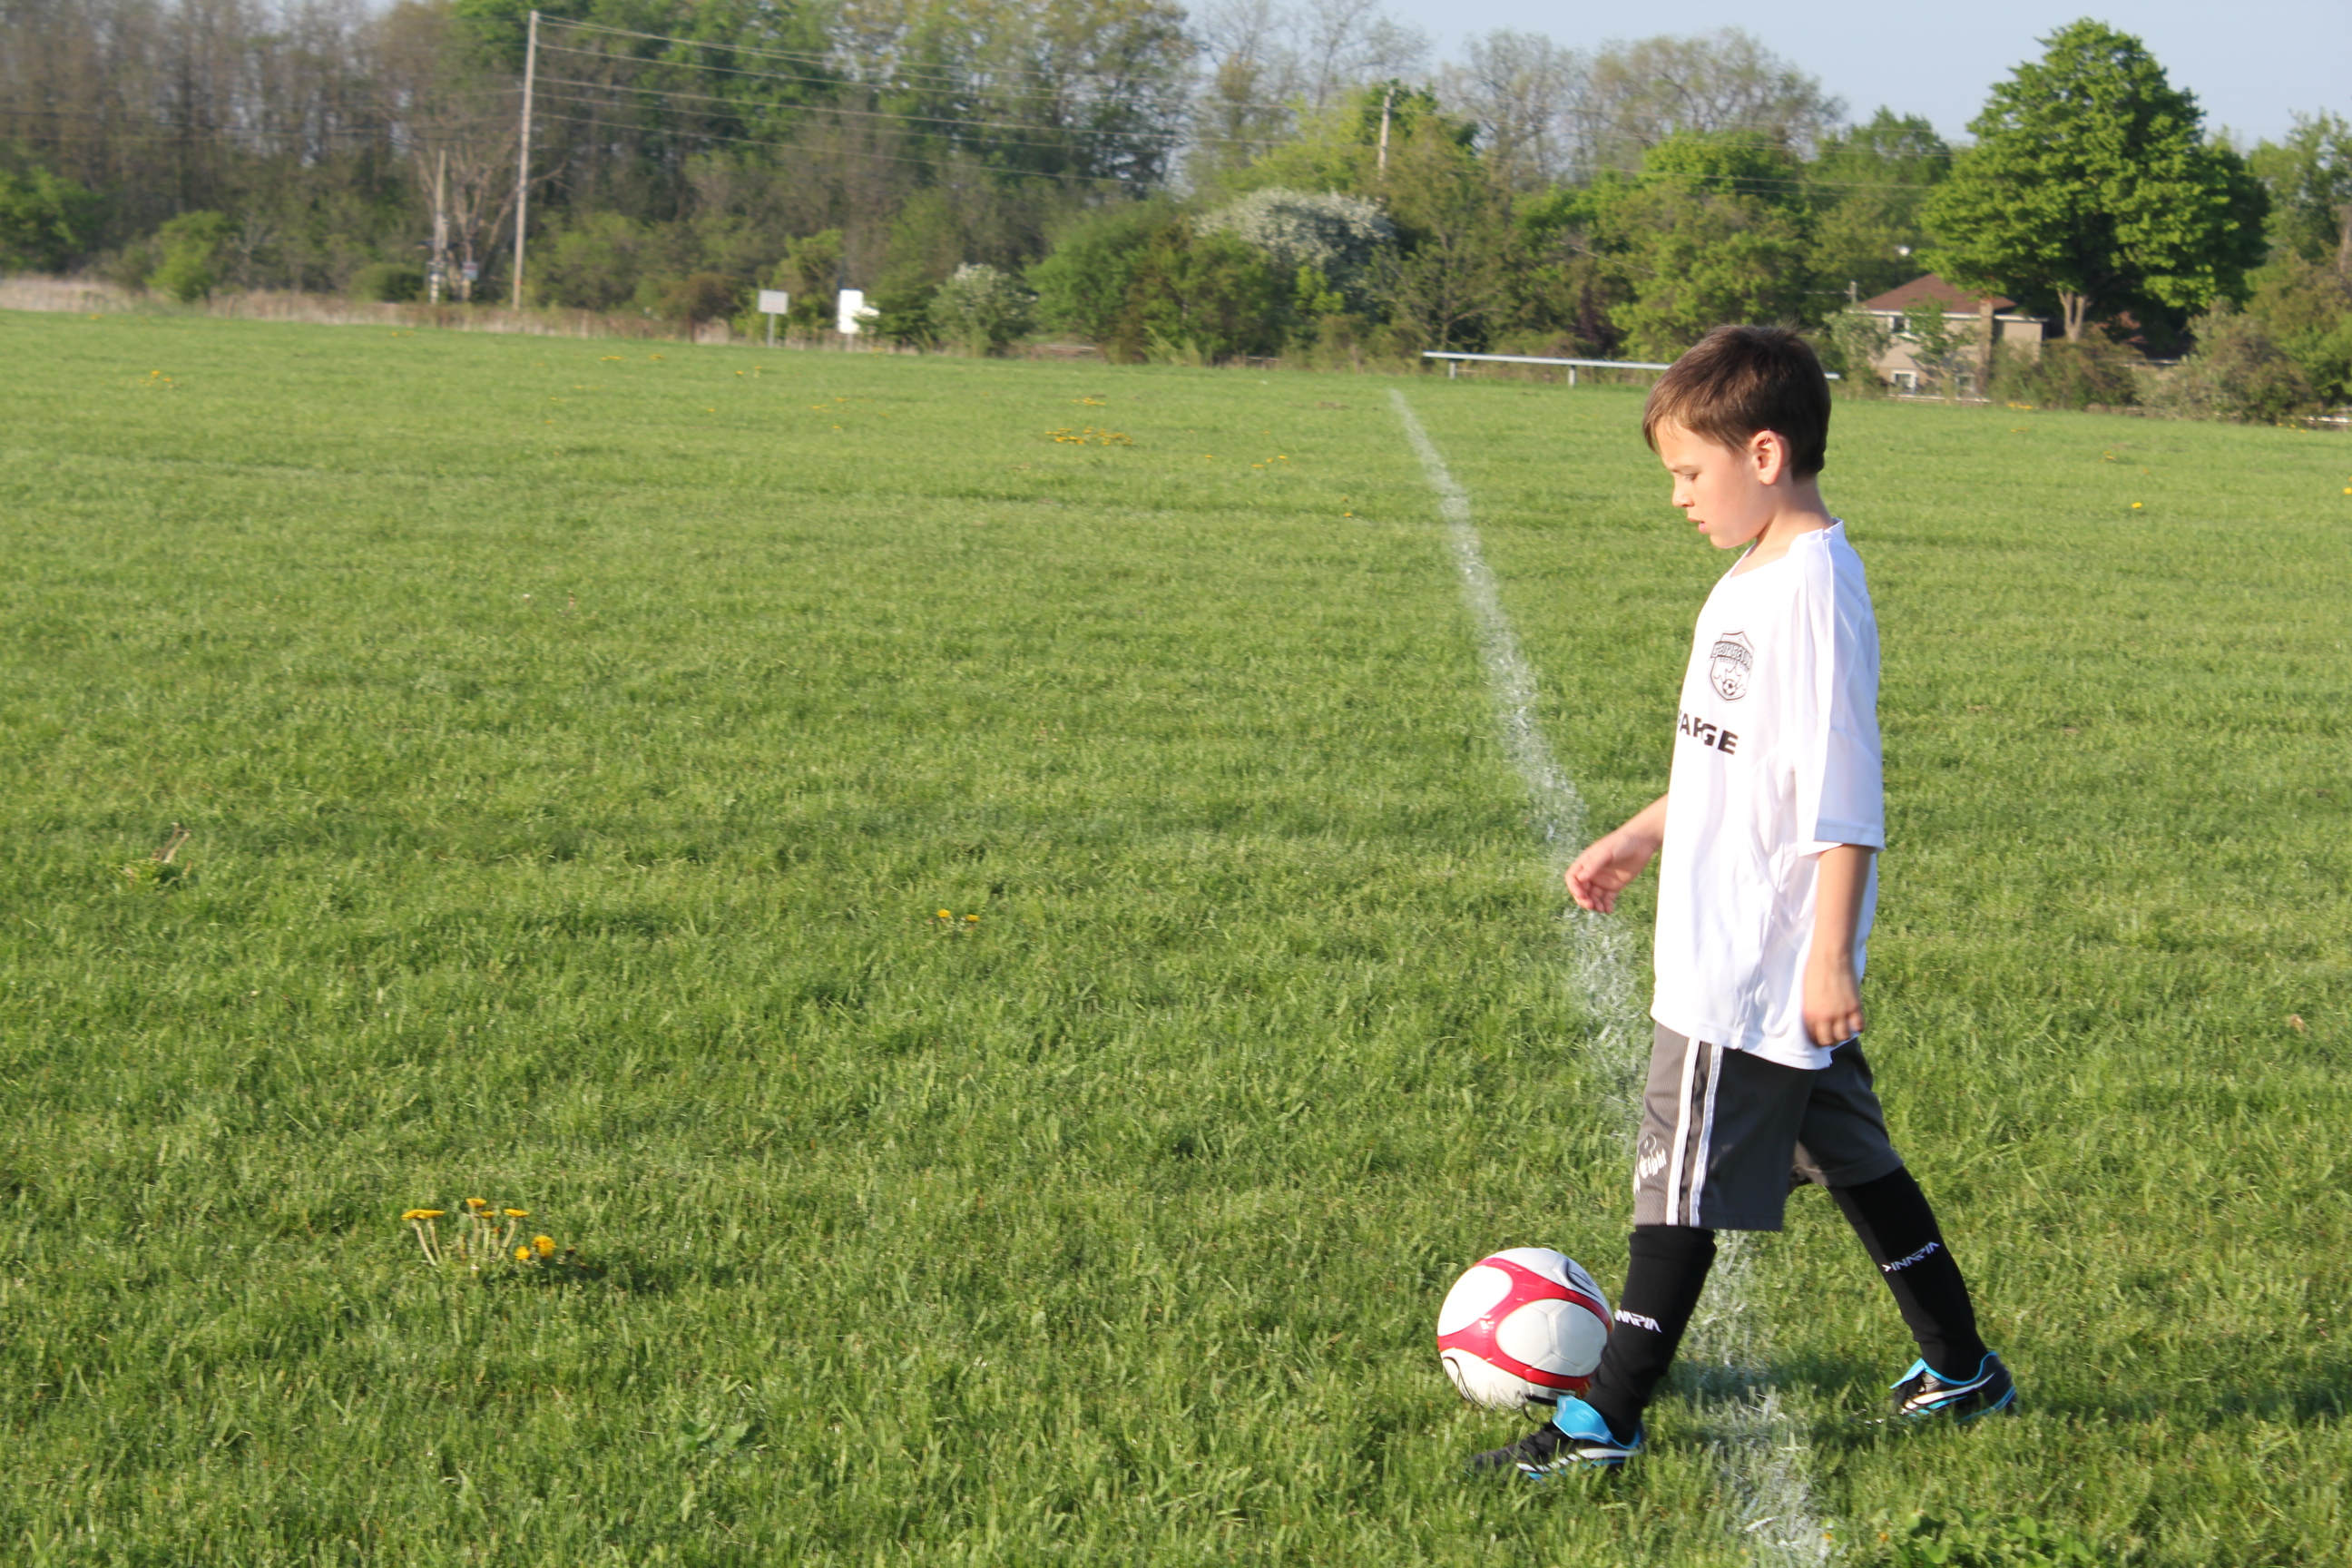 Lessons From the Pitch